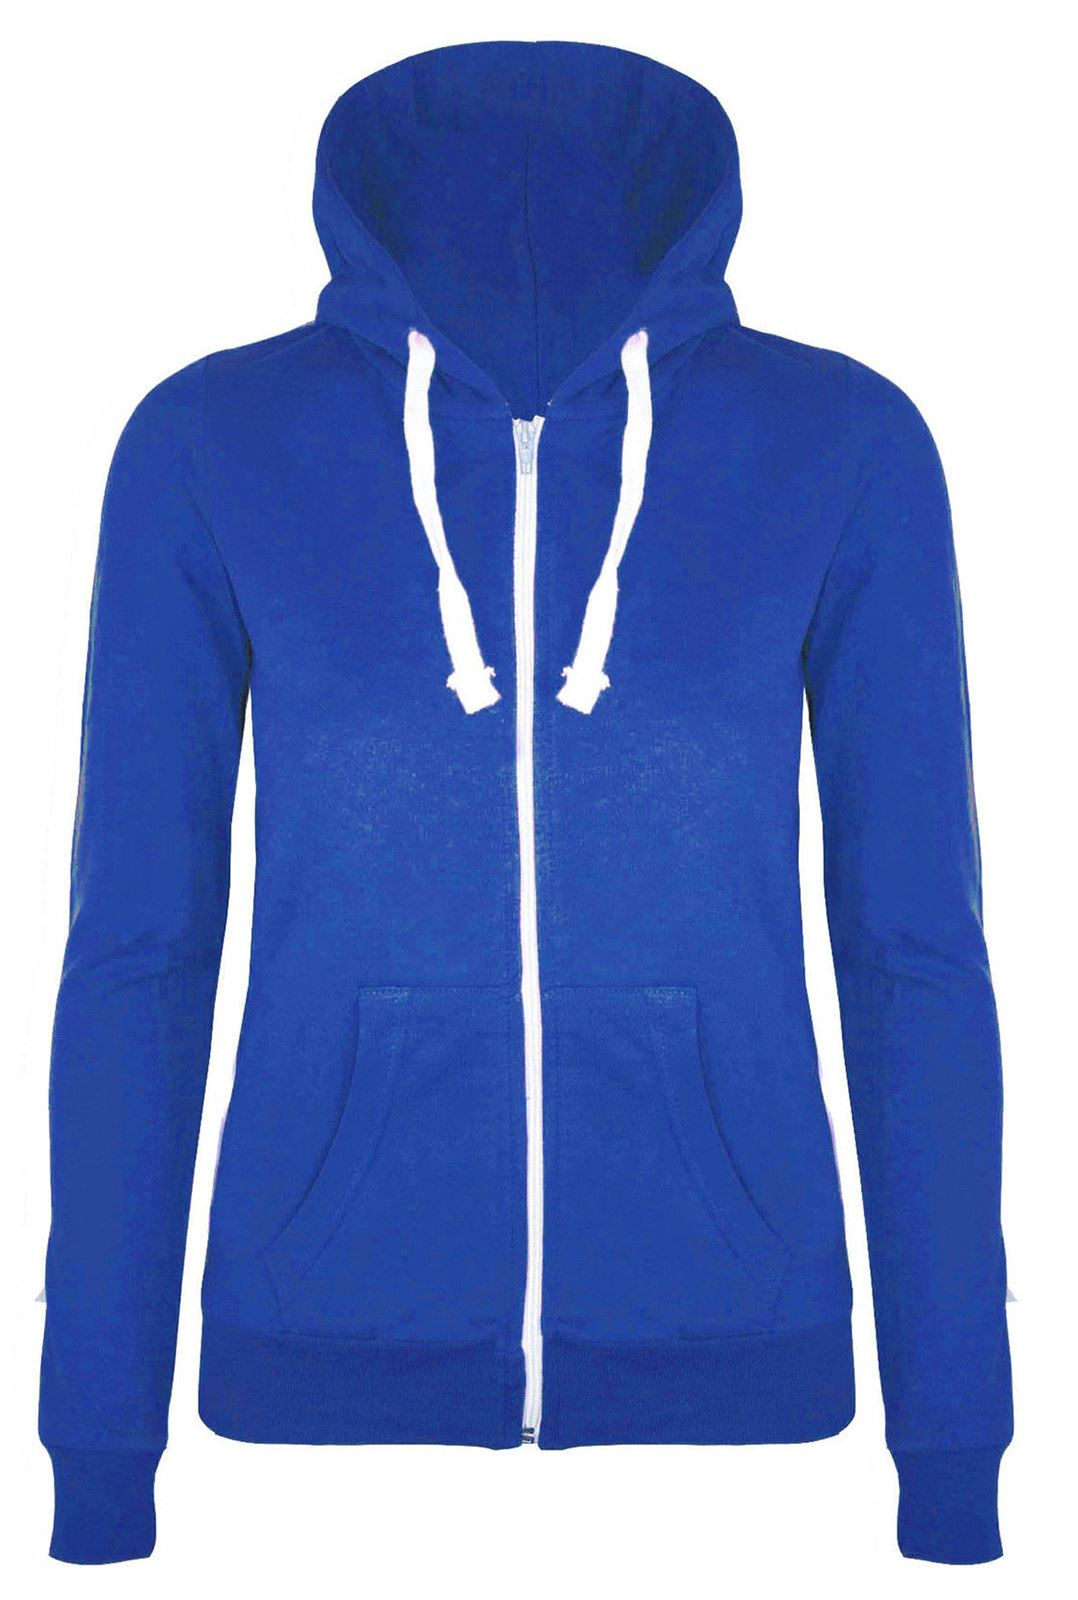 Girls Womens Plain Malaika Hoodie Hoody Hooded Zip Sweatshirt ...